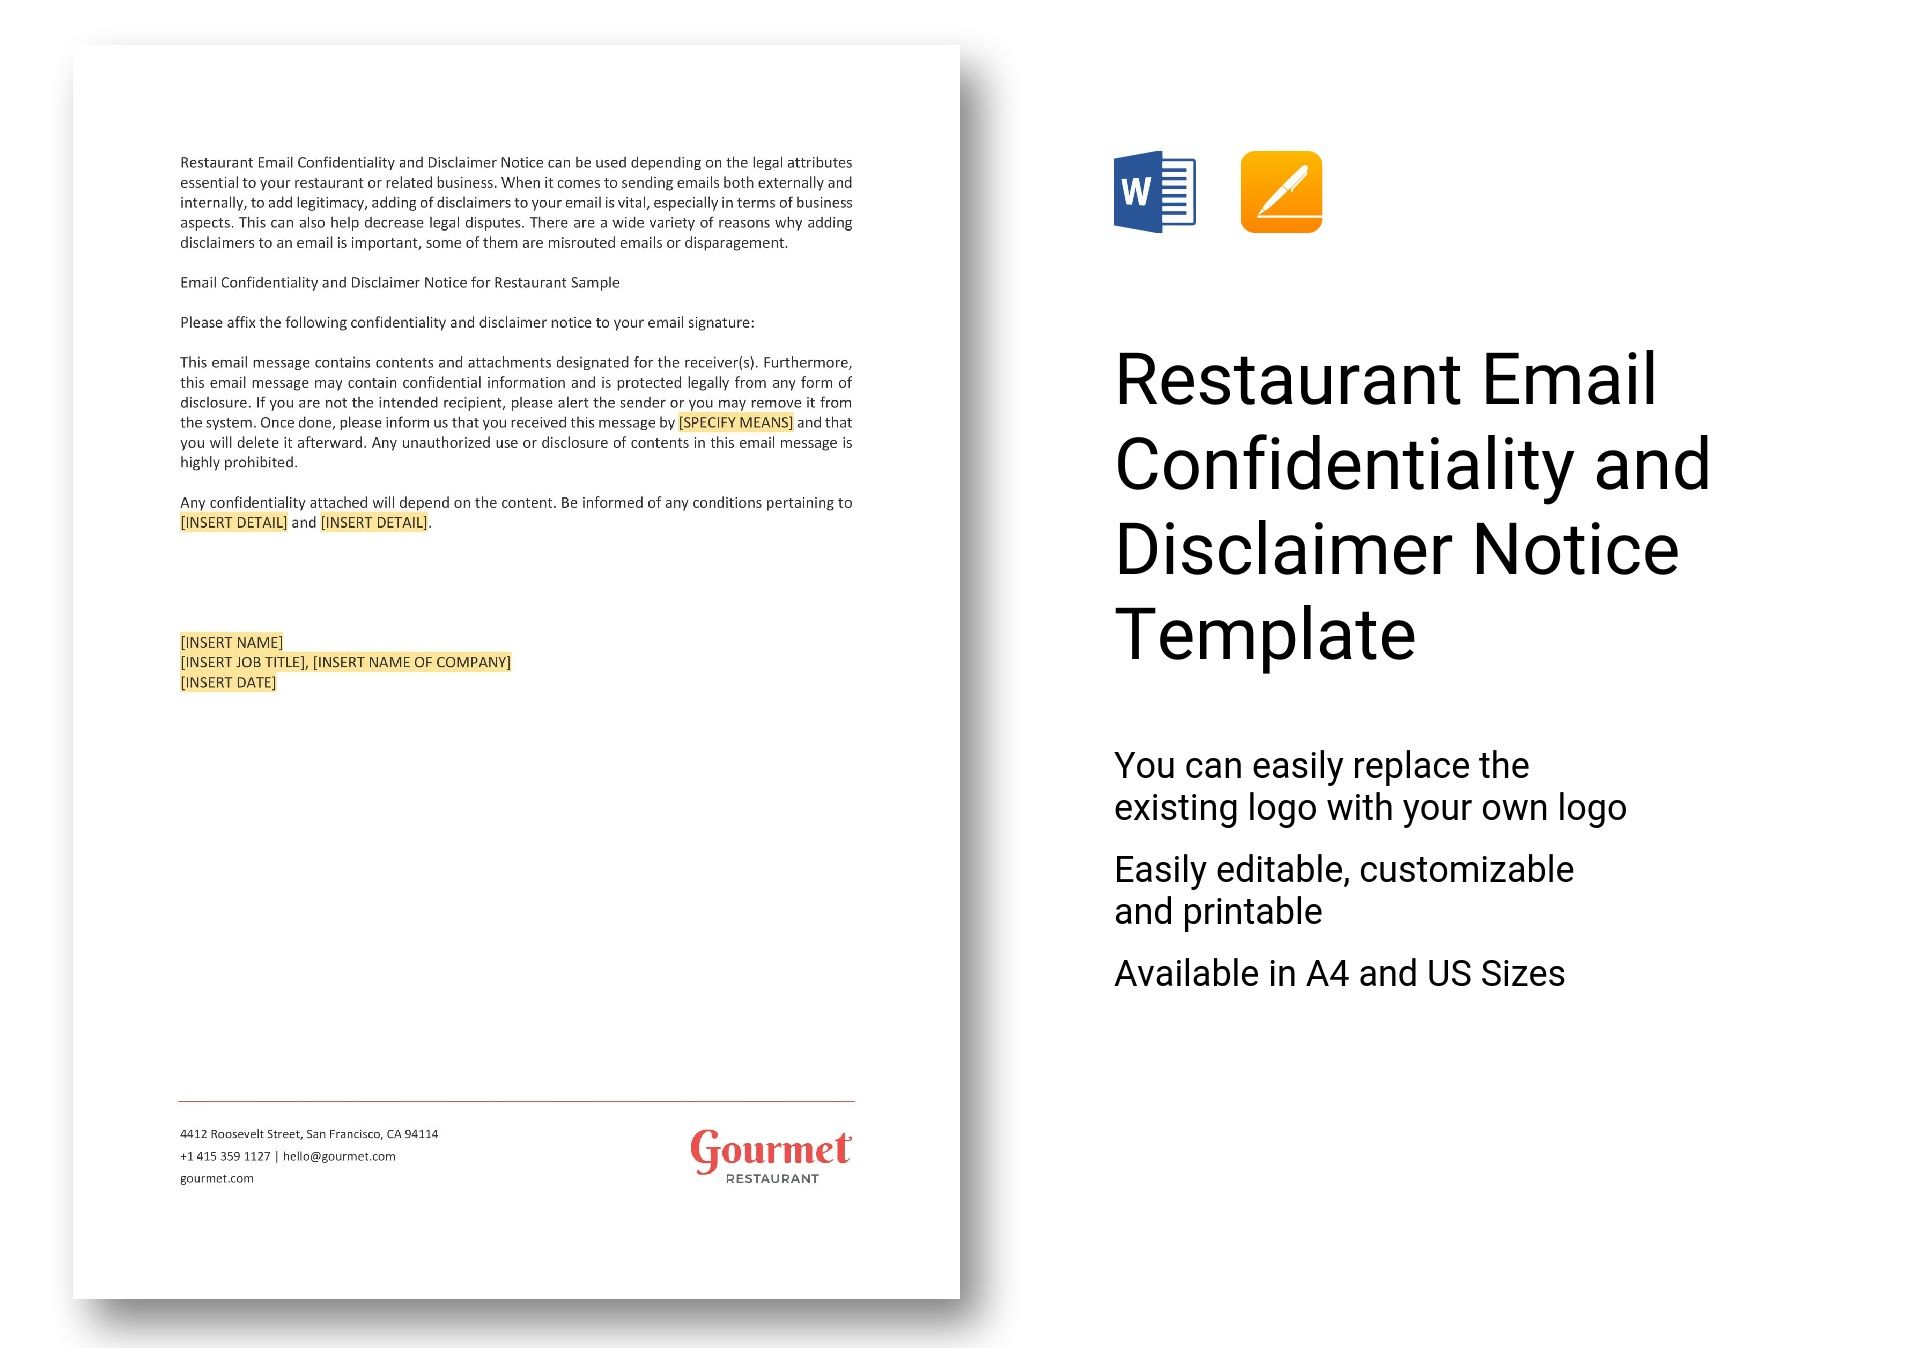 restaurant email confidentiality and disclaimer notice